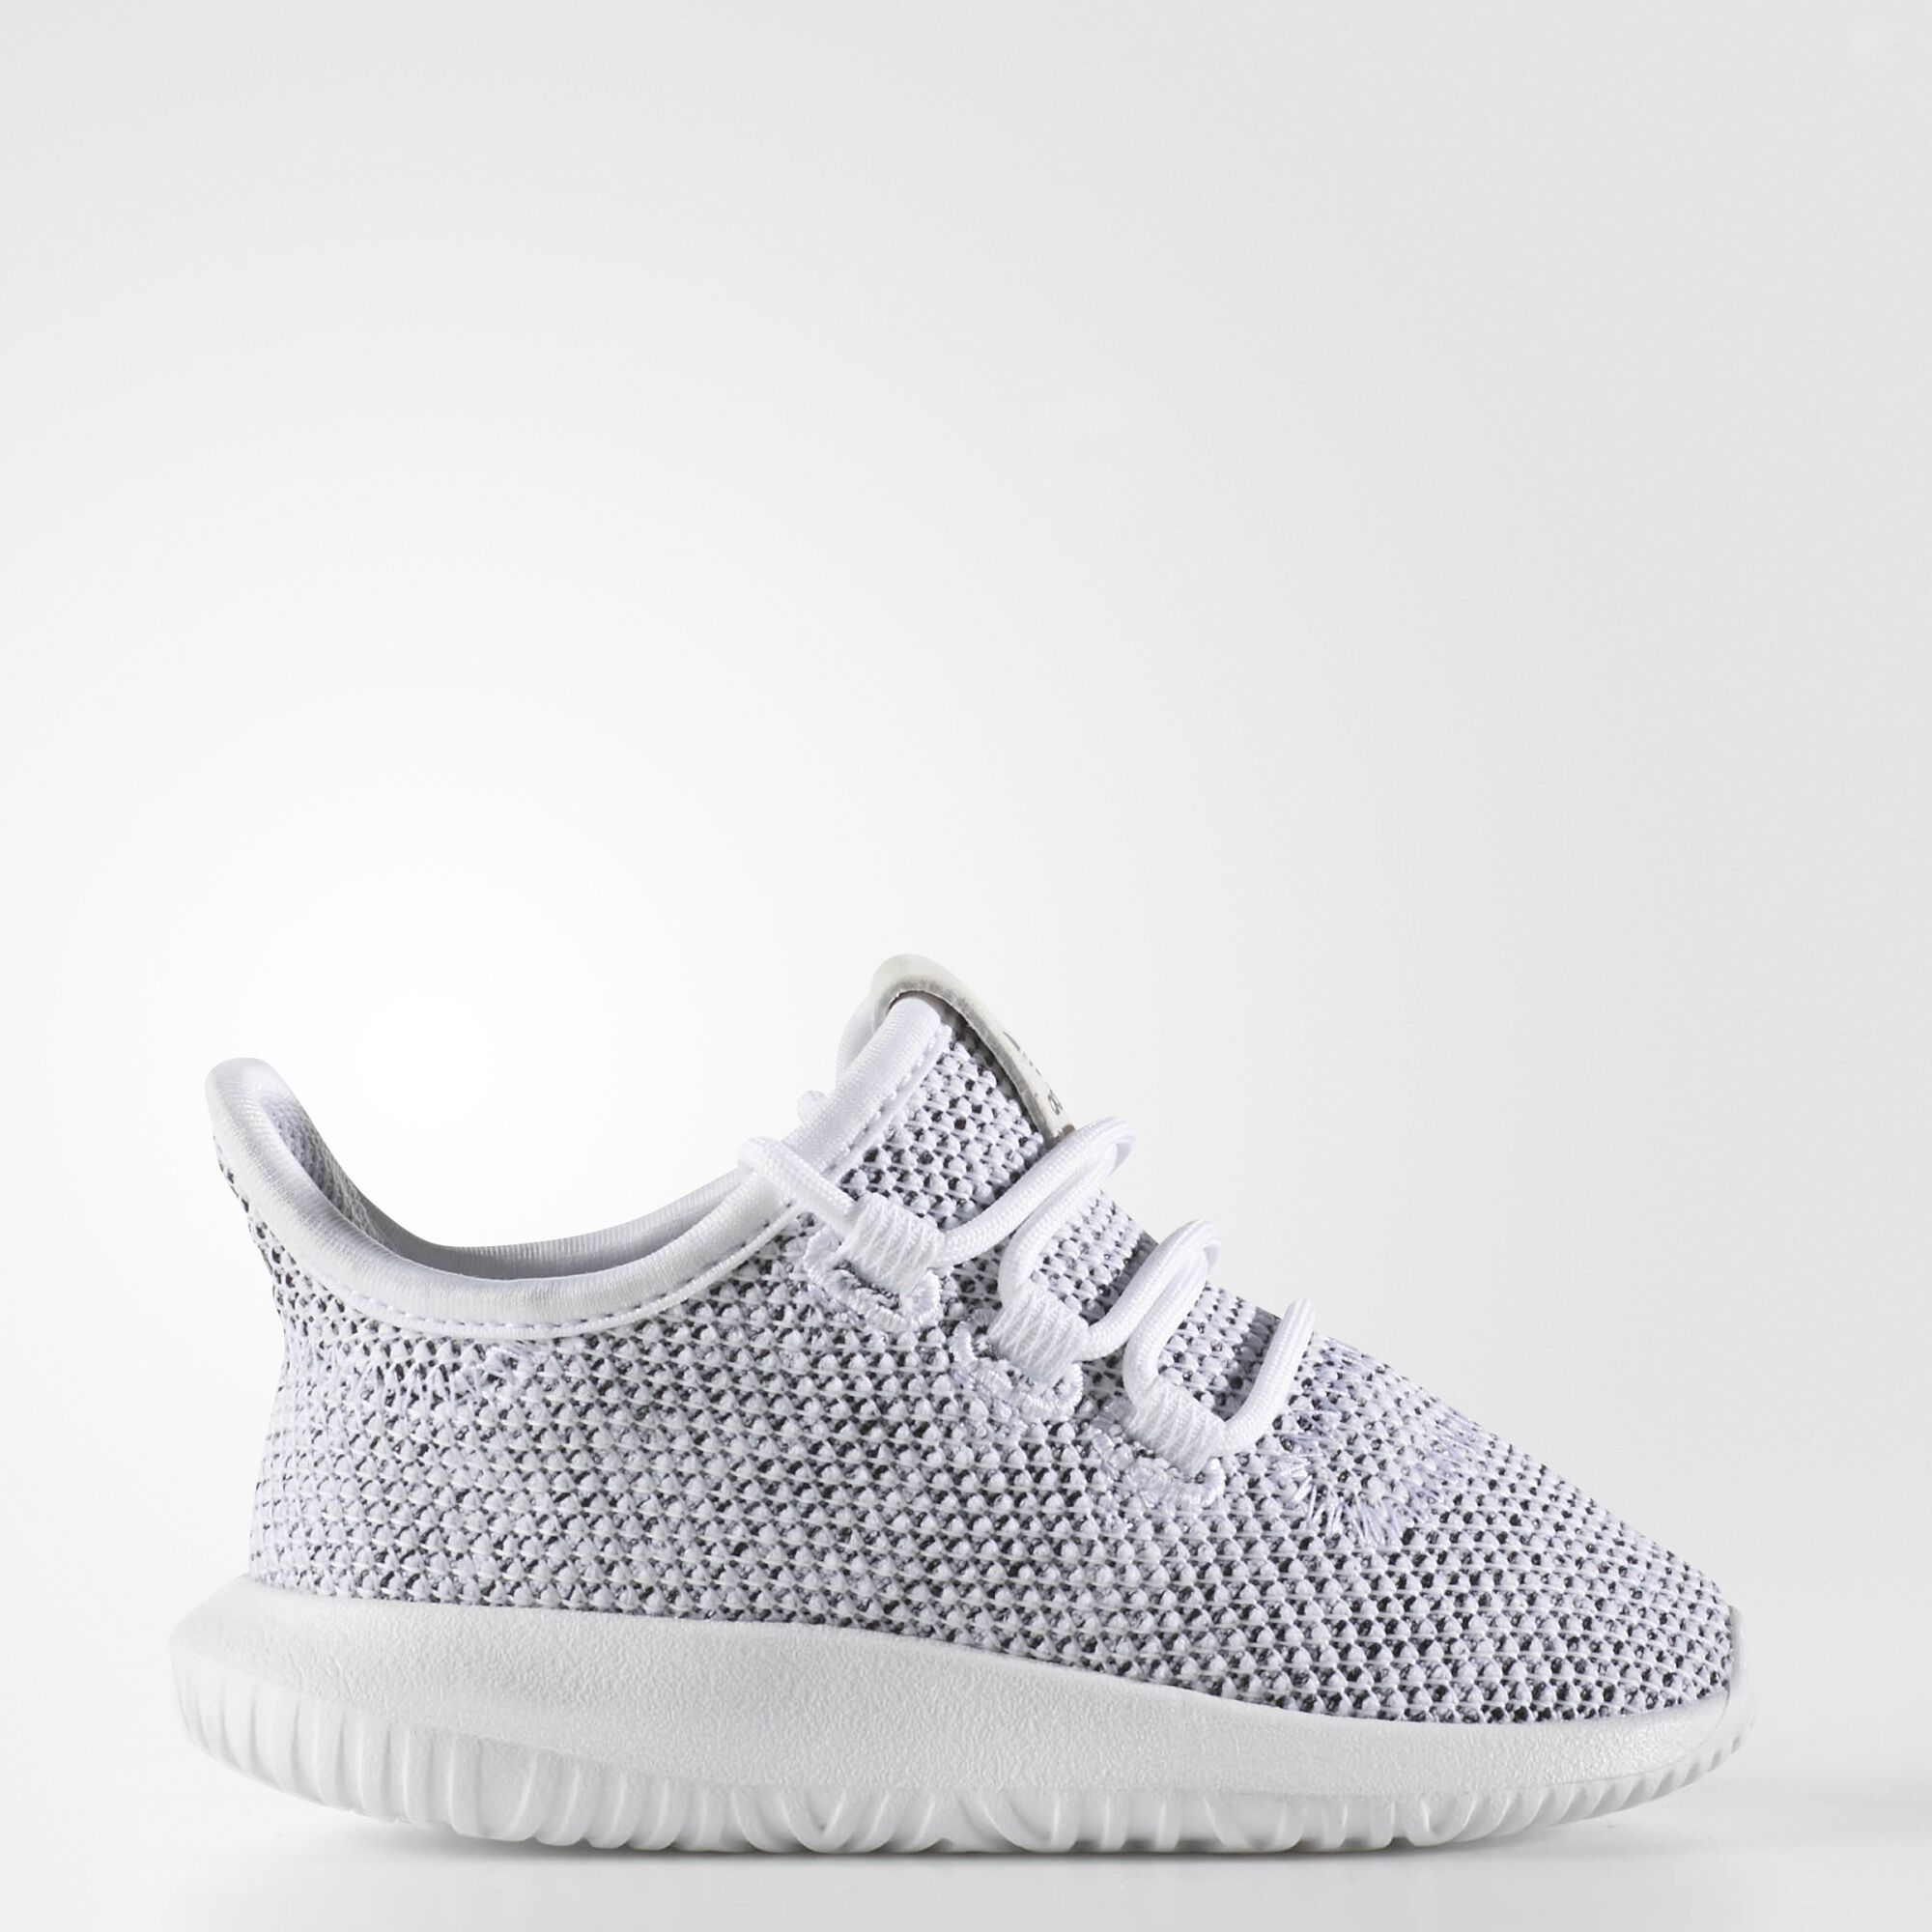 Adidas White Tubular Primeknit Shoes adidas PT